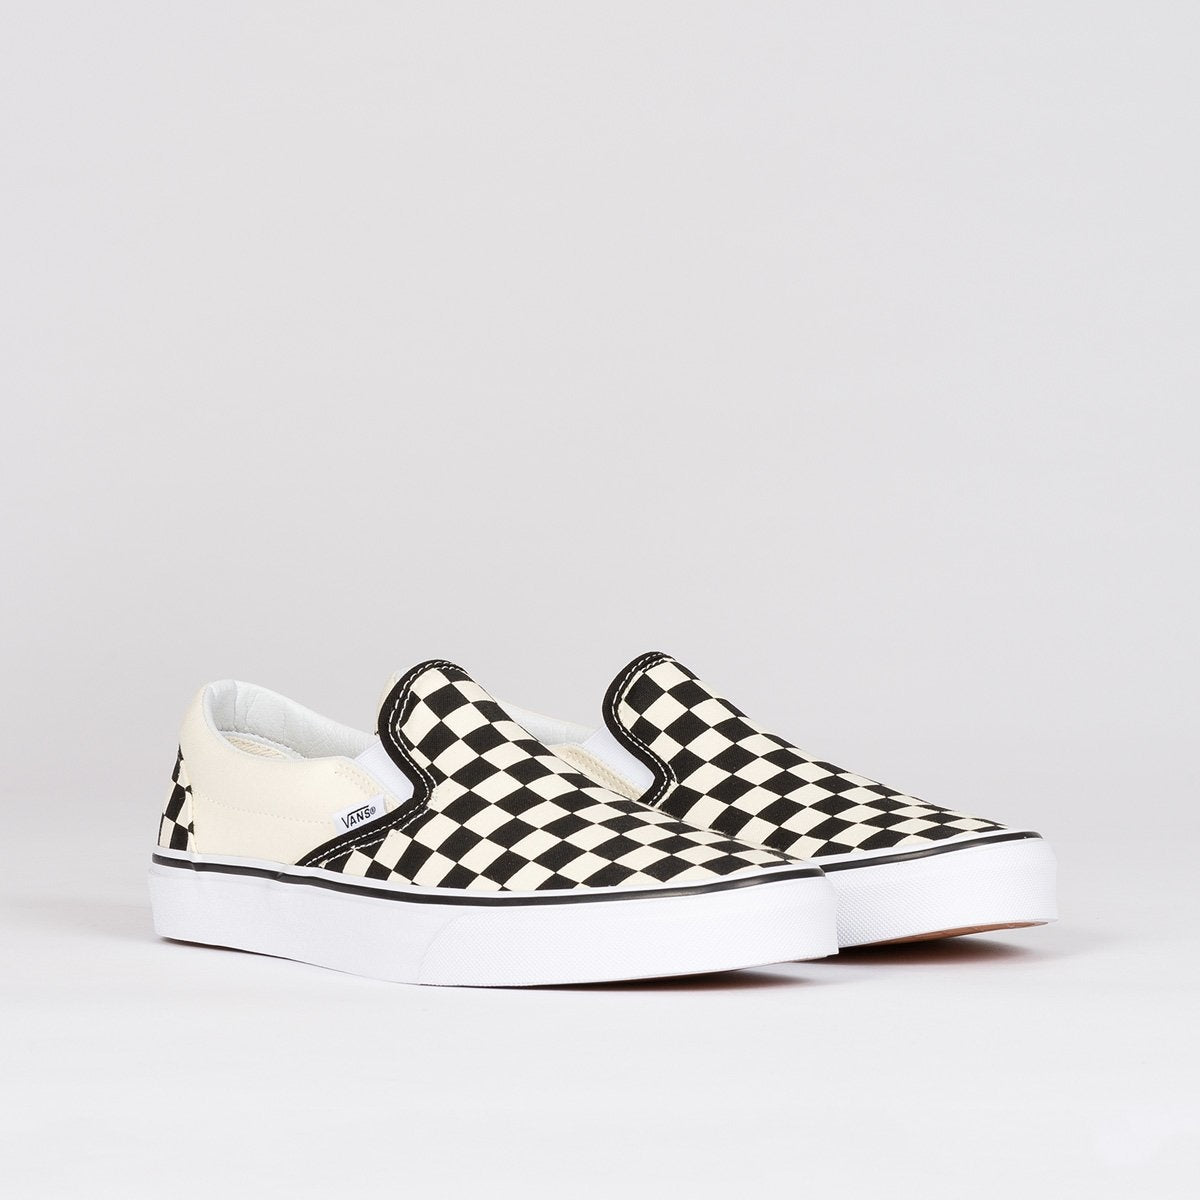 Vans Classic Slip On Black/White Checkerboard - Unisex L - Footwear